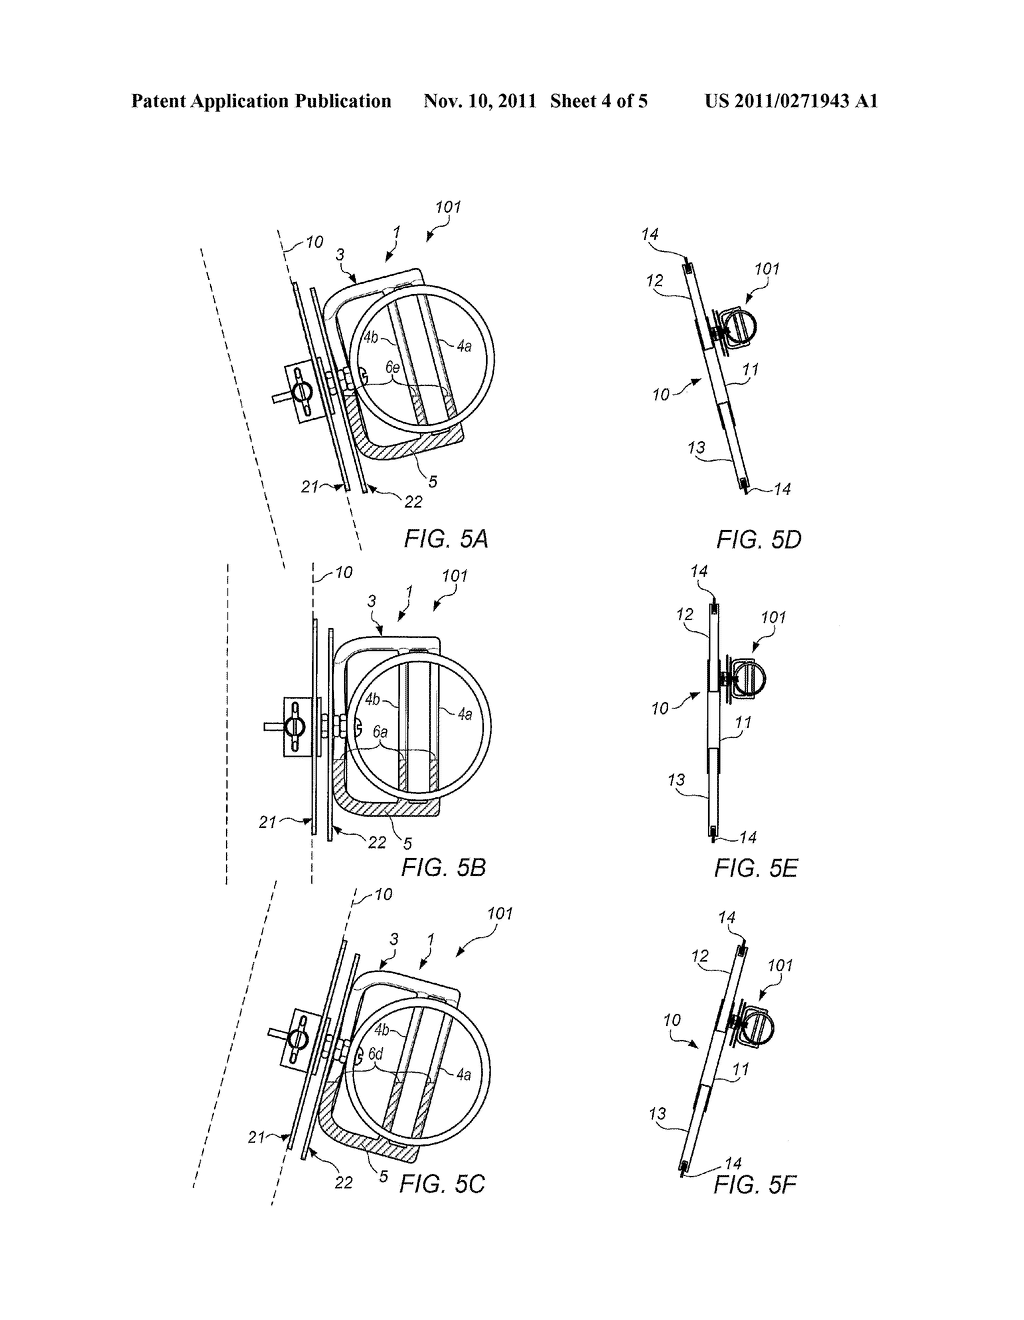 hight resolution of distance compensation sight device for aiming an archery bow diagram schematic and image 05